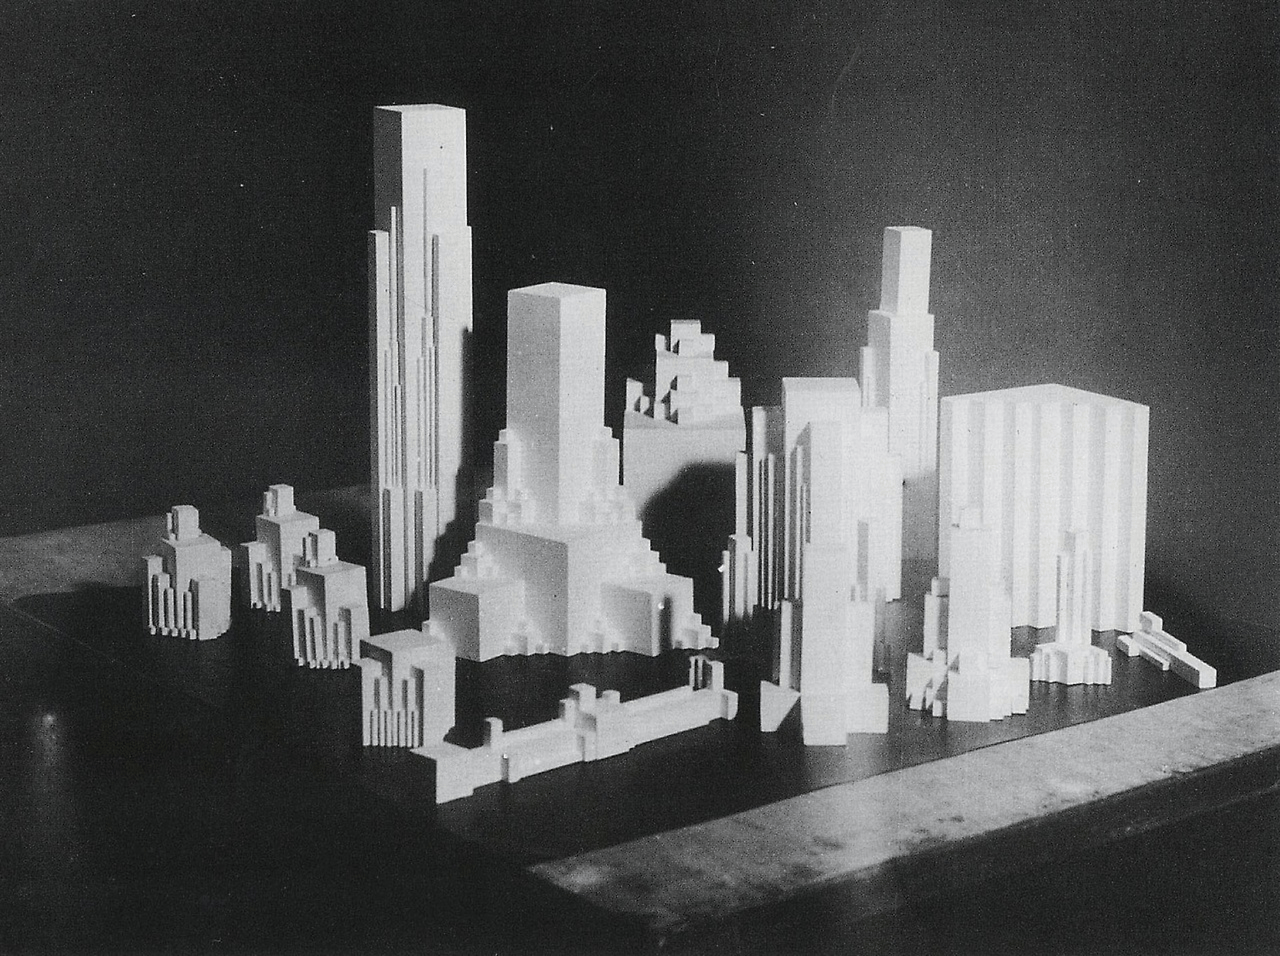 """Kazimir Malevich, Vertical Architectons, 1929-31. Maria Gough's keynote at the """"Living Time"""" symposium at UC Berkeley focused in part on the Architectons"""